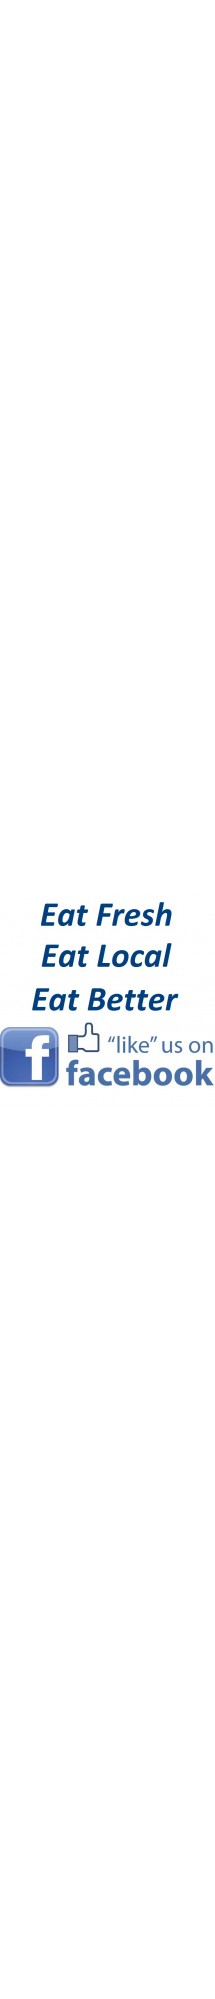 eat fresh eat local